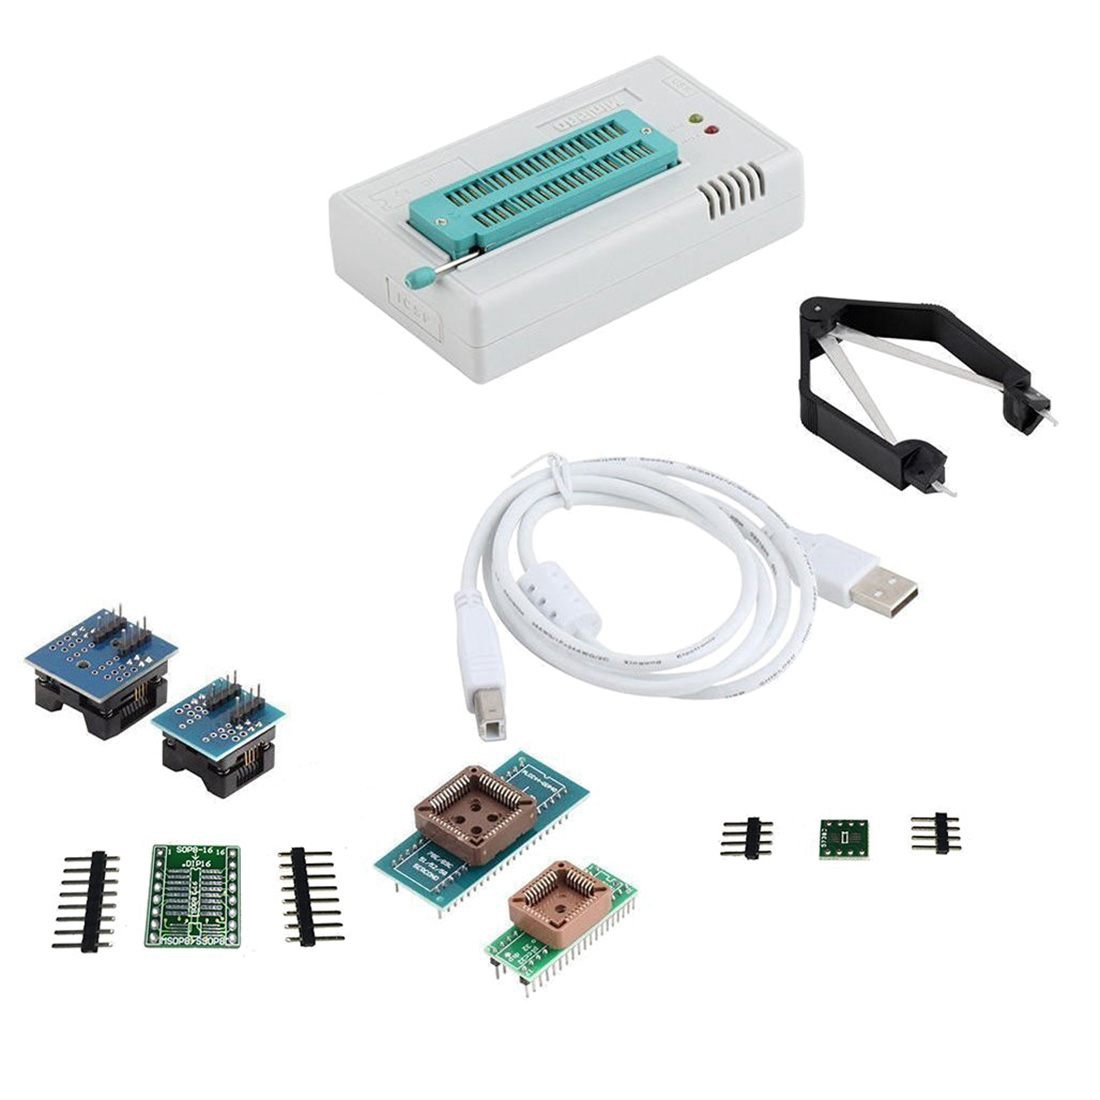 TL866CS Programmer USB EPROM FLASH BIOS Programmable Logic Circuits 6 Adapters Socket Extractor for 13000 IC usb tl866cs programmer eprom spi flash avr gal pic 9pcs adapters test clip 25 spi flash support in circuit programming adapter